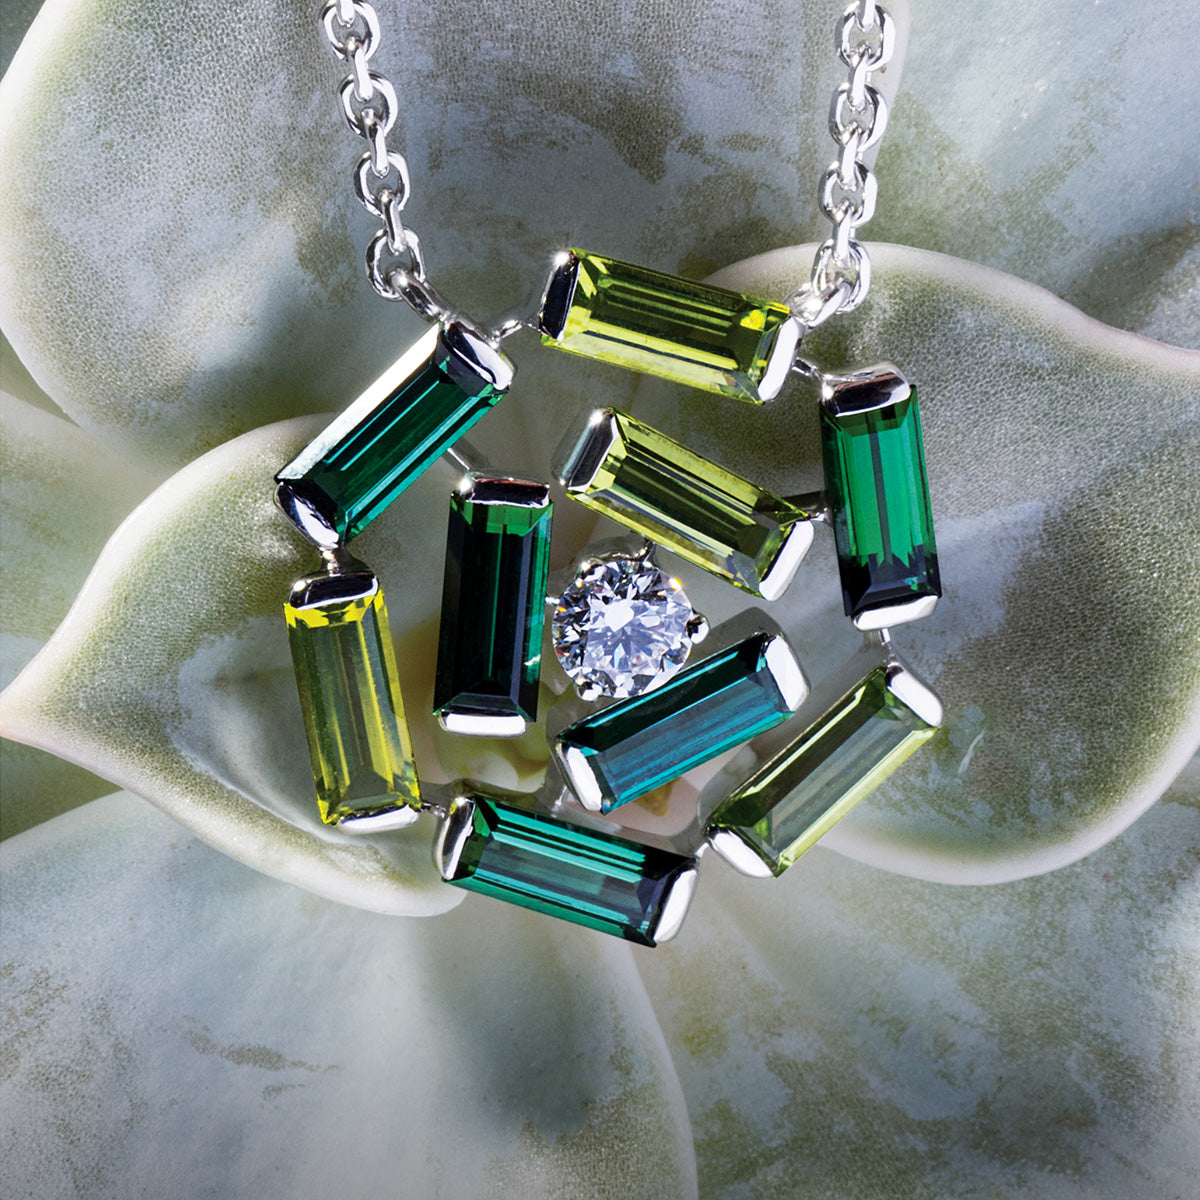 BROADWAY NECKLACE WHITE GOLD DIAMOND GREEN TOURMALINE AND PERIDOT BAGUETTE, MANHATTAN COLLECTION